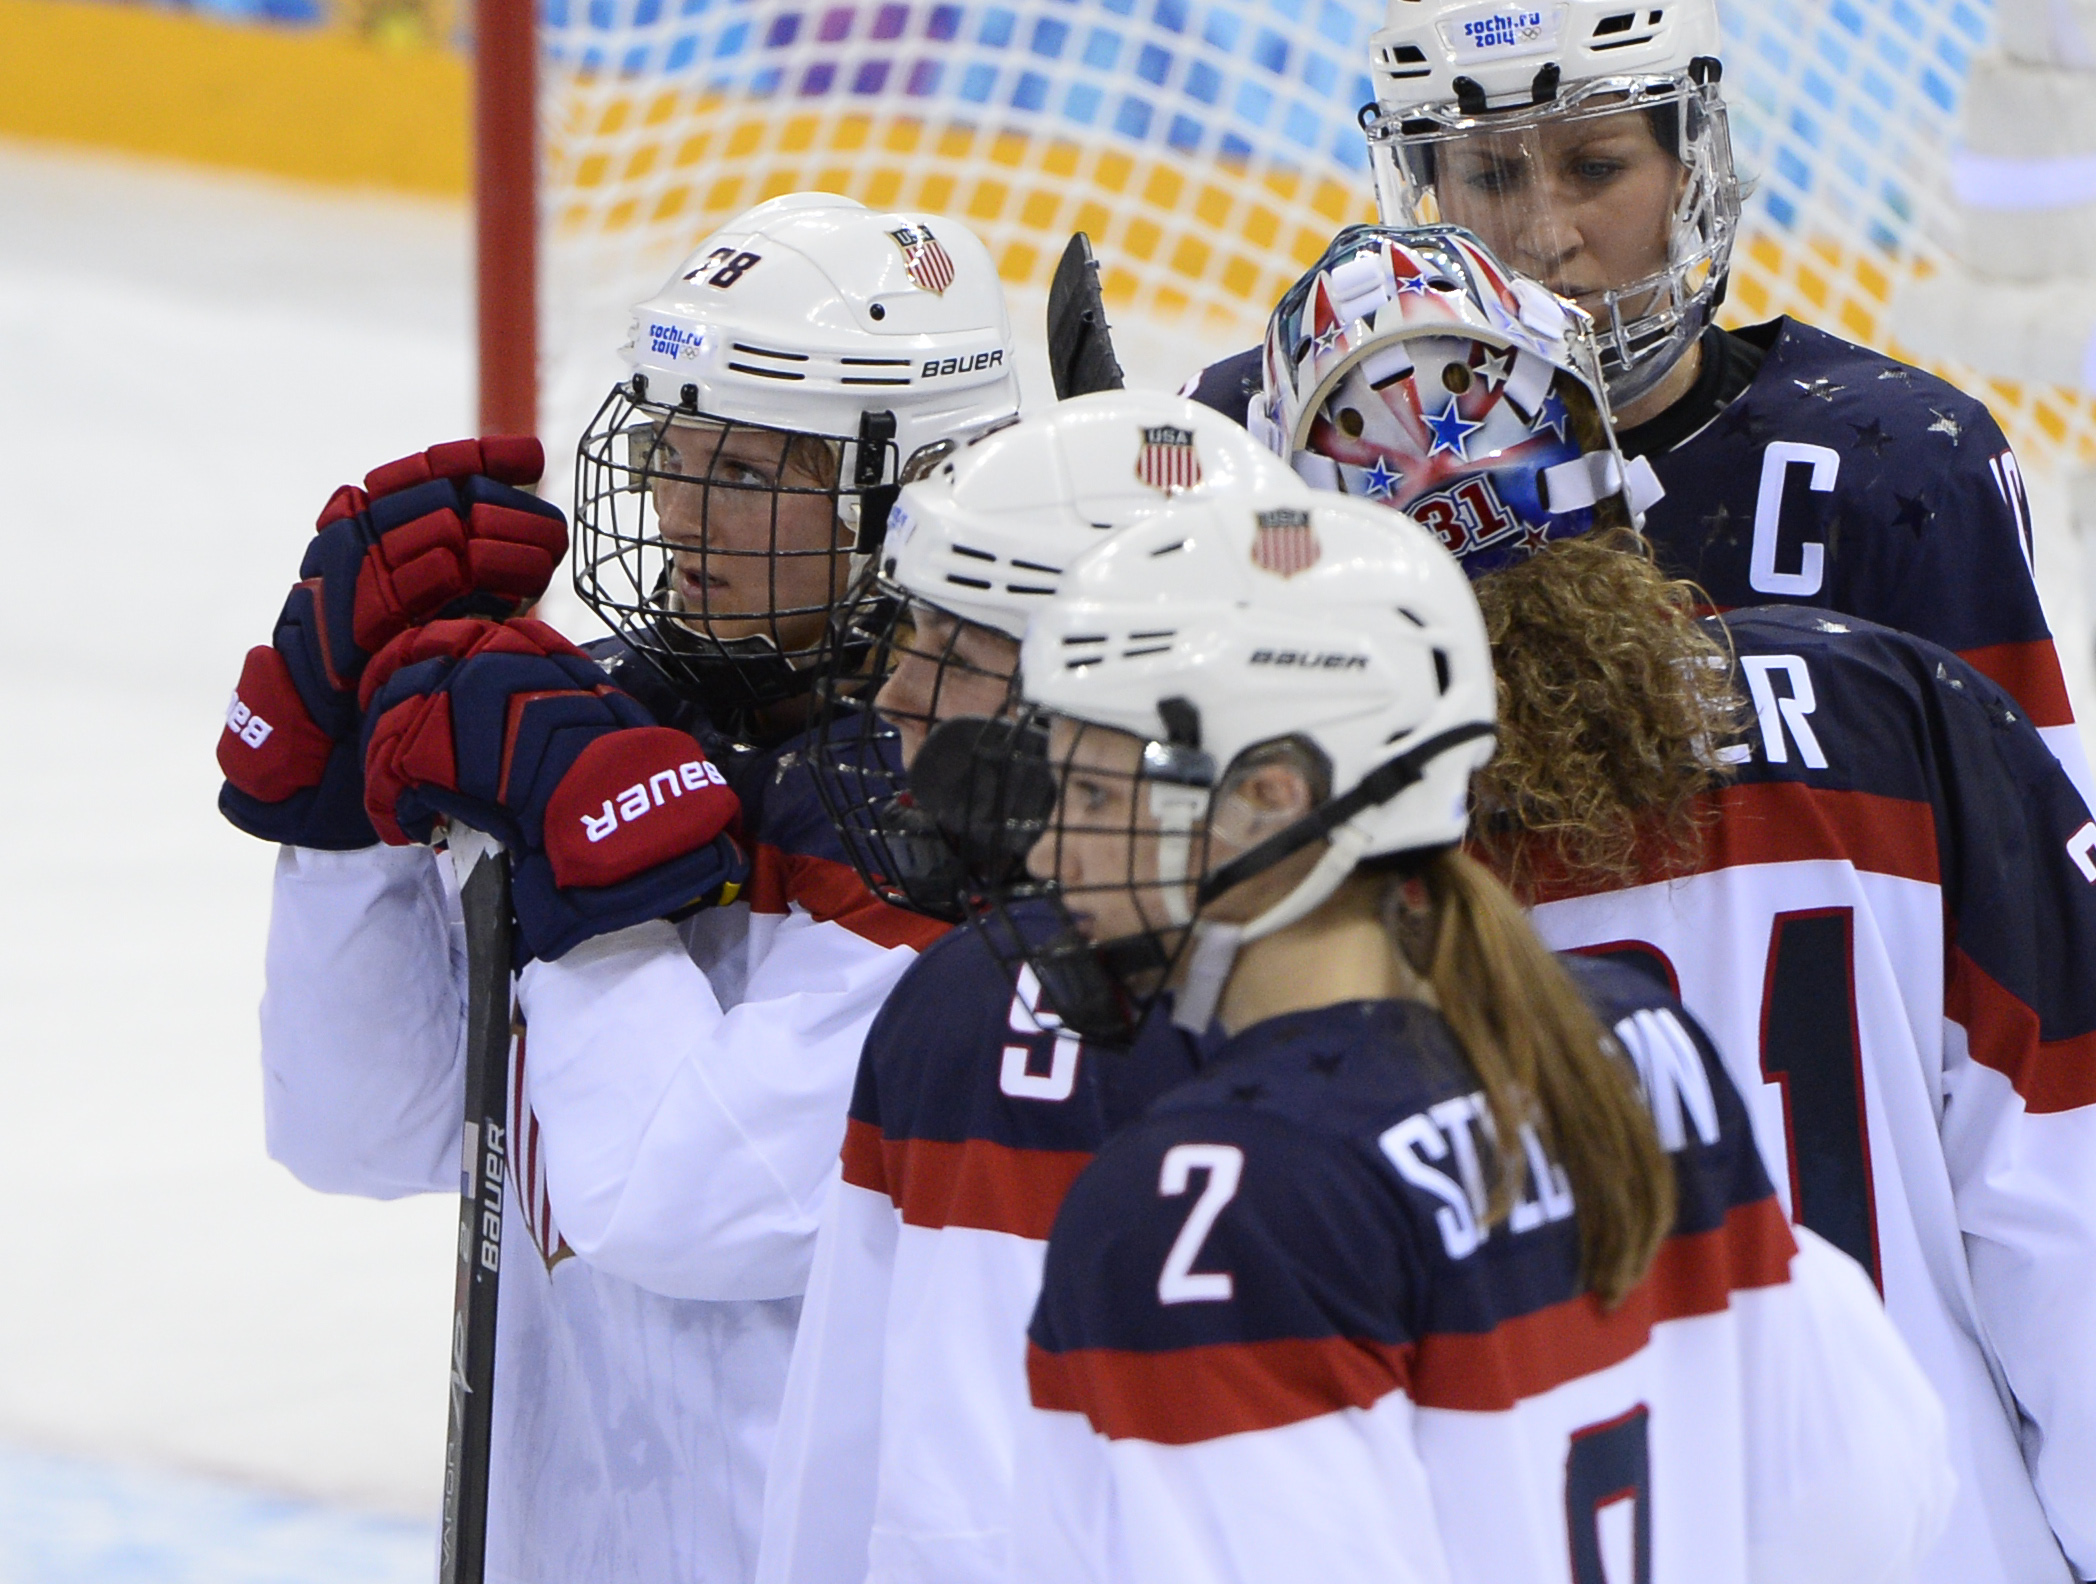 The National Women S Hockey League Will Pay Women For A Sport They